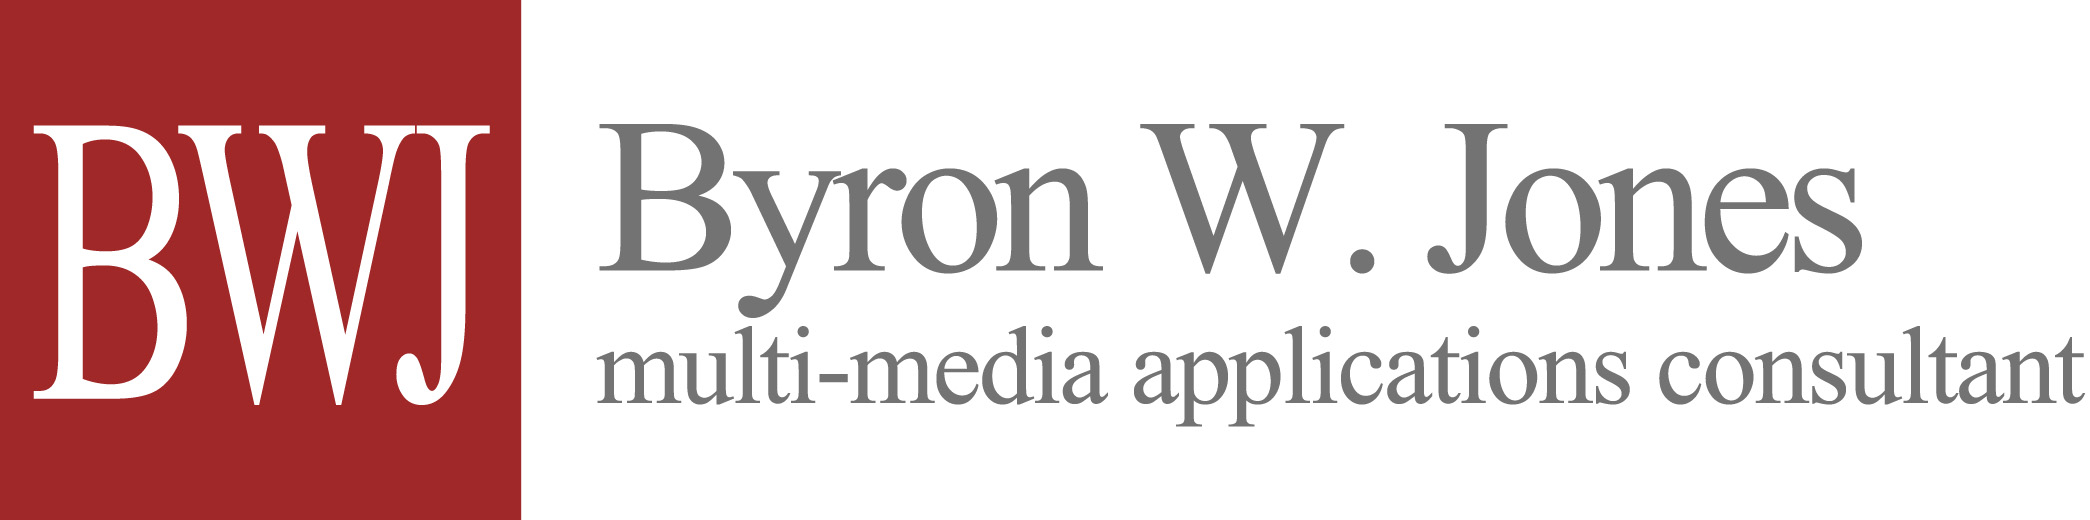 Byron W. Jones, multi-media applications development consultant